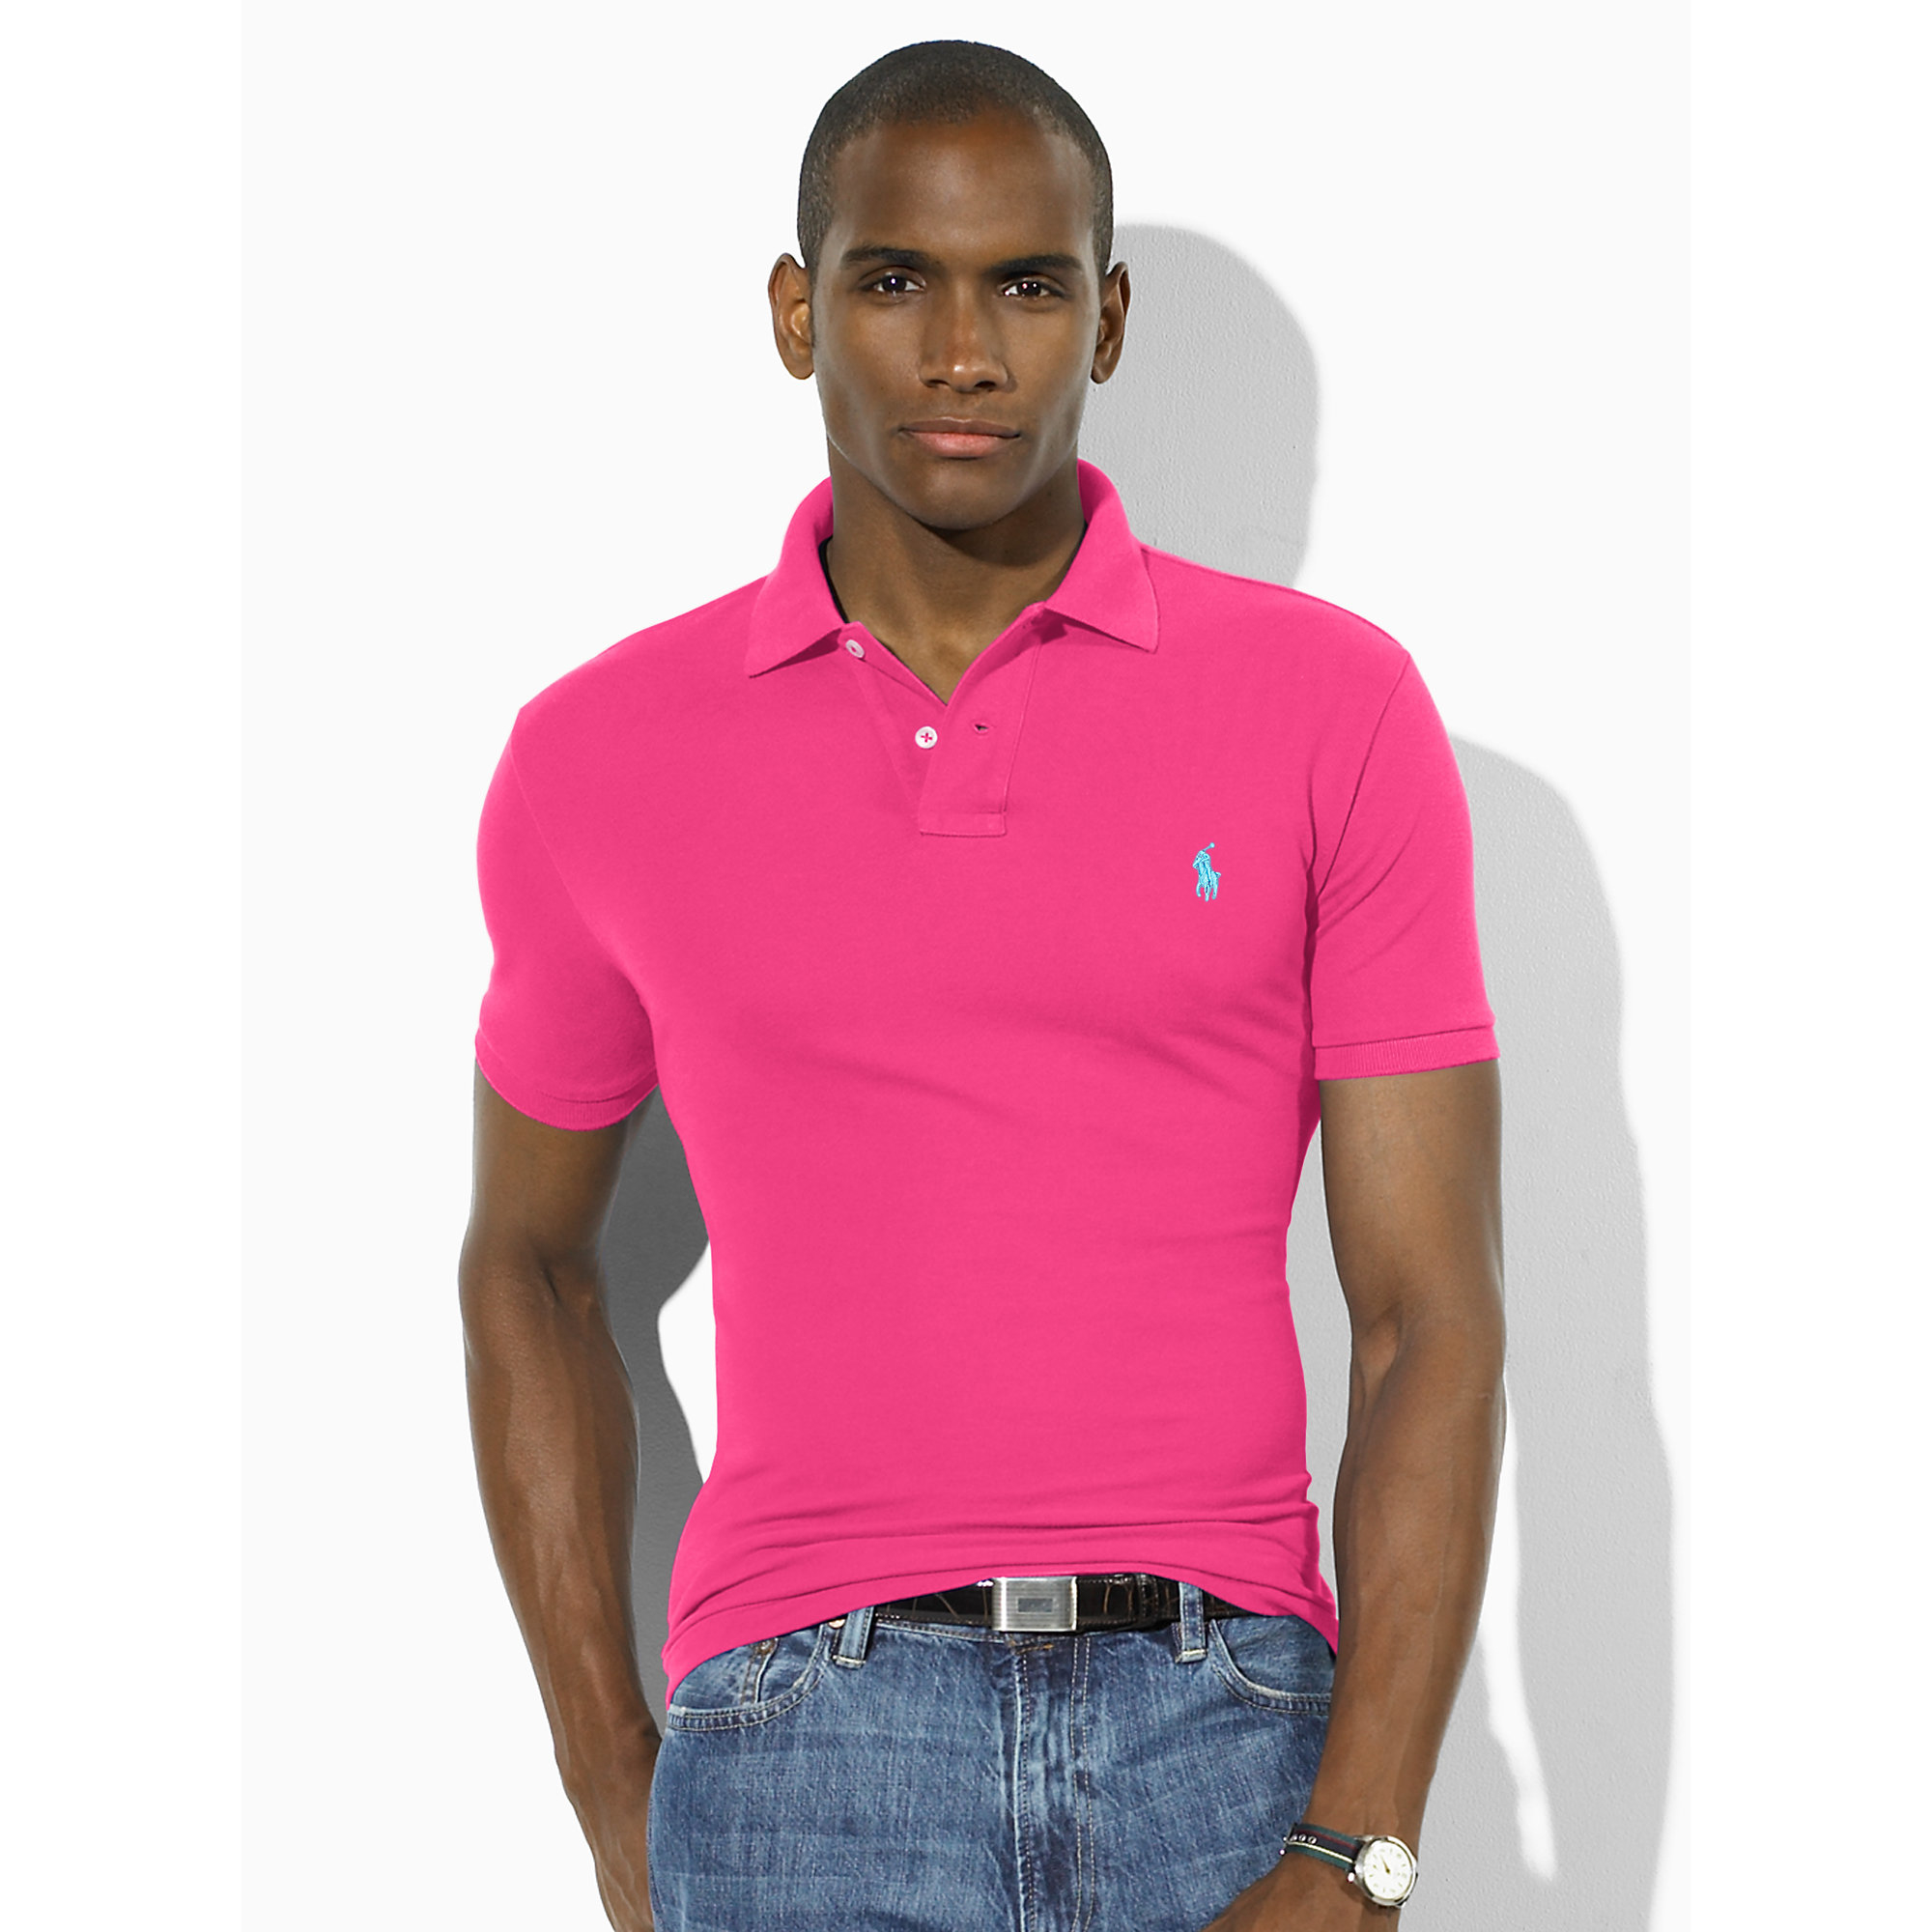 297e526952653 ... authentic lyst polo ralph lauren slim fit mesh polo shirt in pink for  men cdcc5 a537e